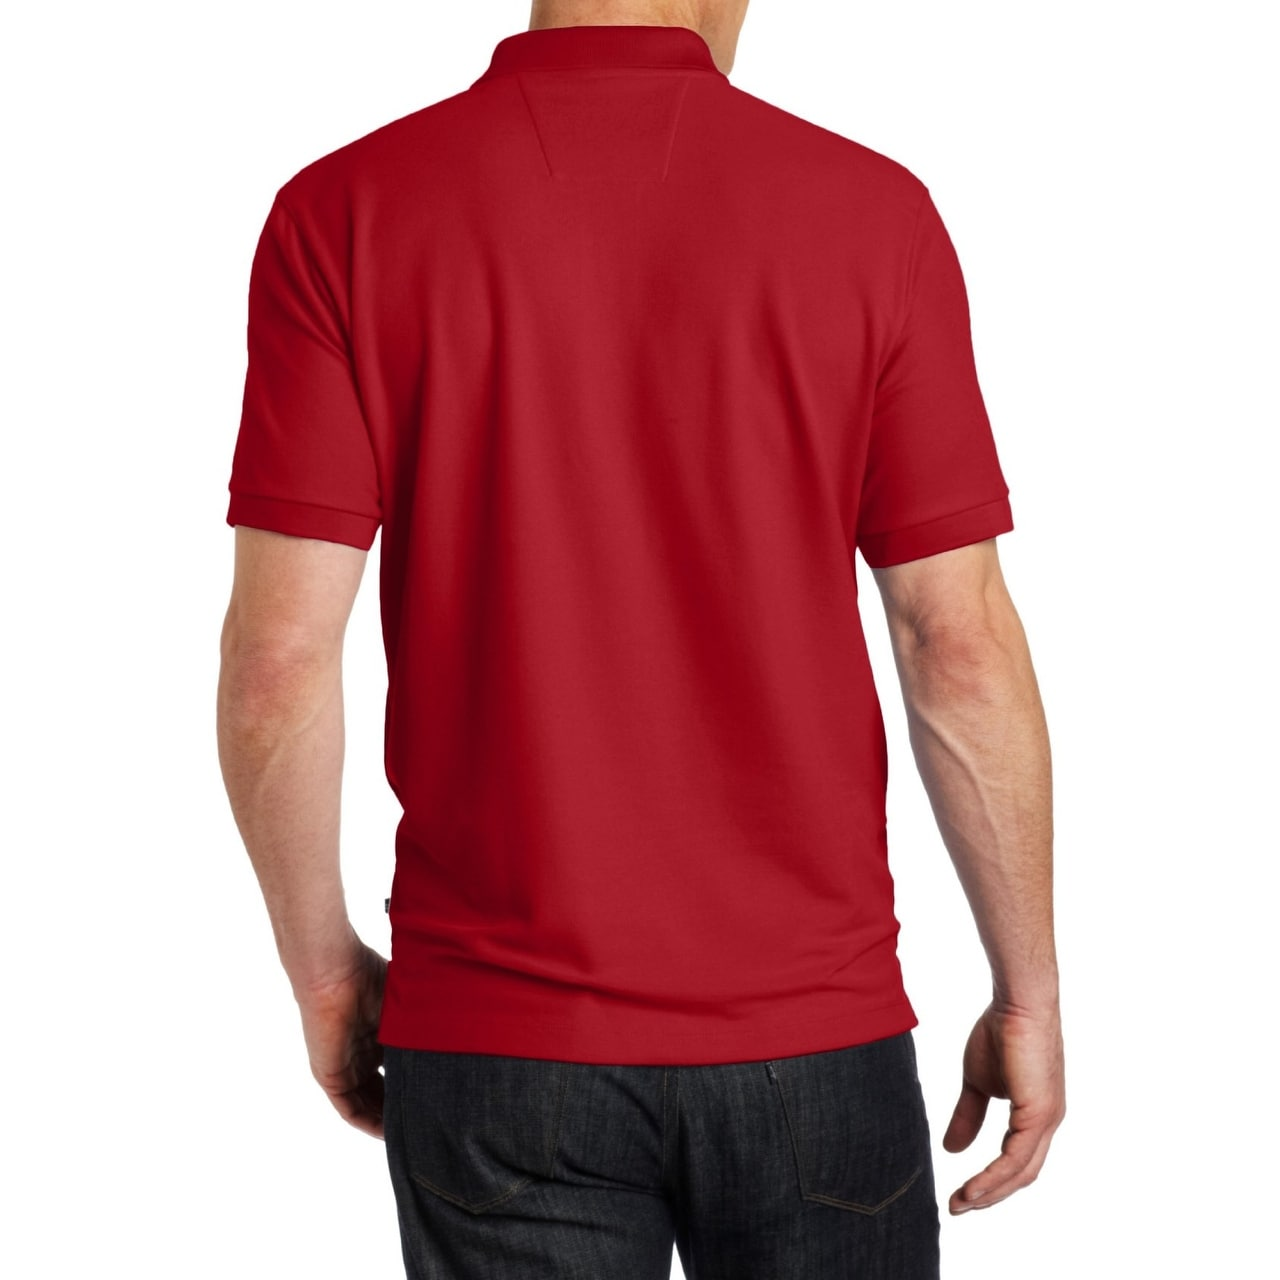 fd04662b Shop Nautica NEW Red Mens Size 2XLT Big & Tall Performance Deck Polo Shirt  - Free Shipping On Orders Over $45 - Overstock - 19846473